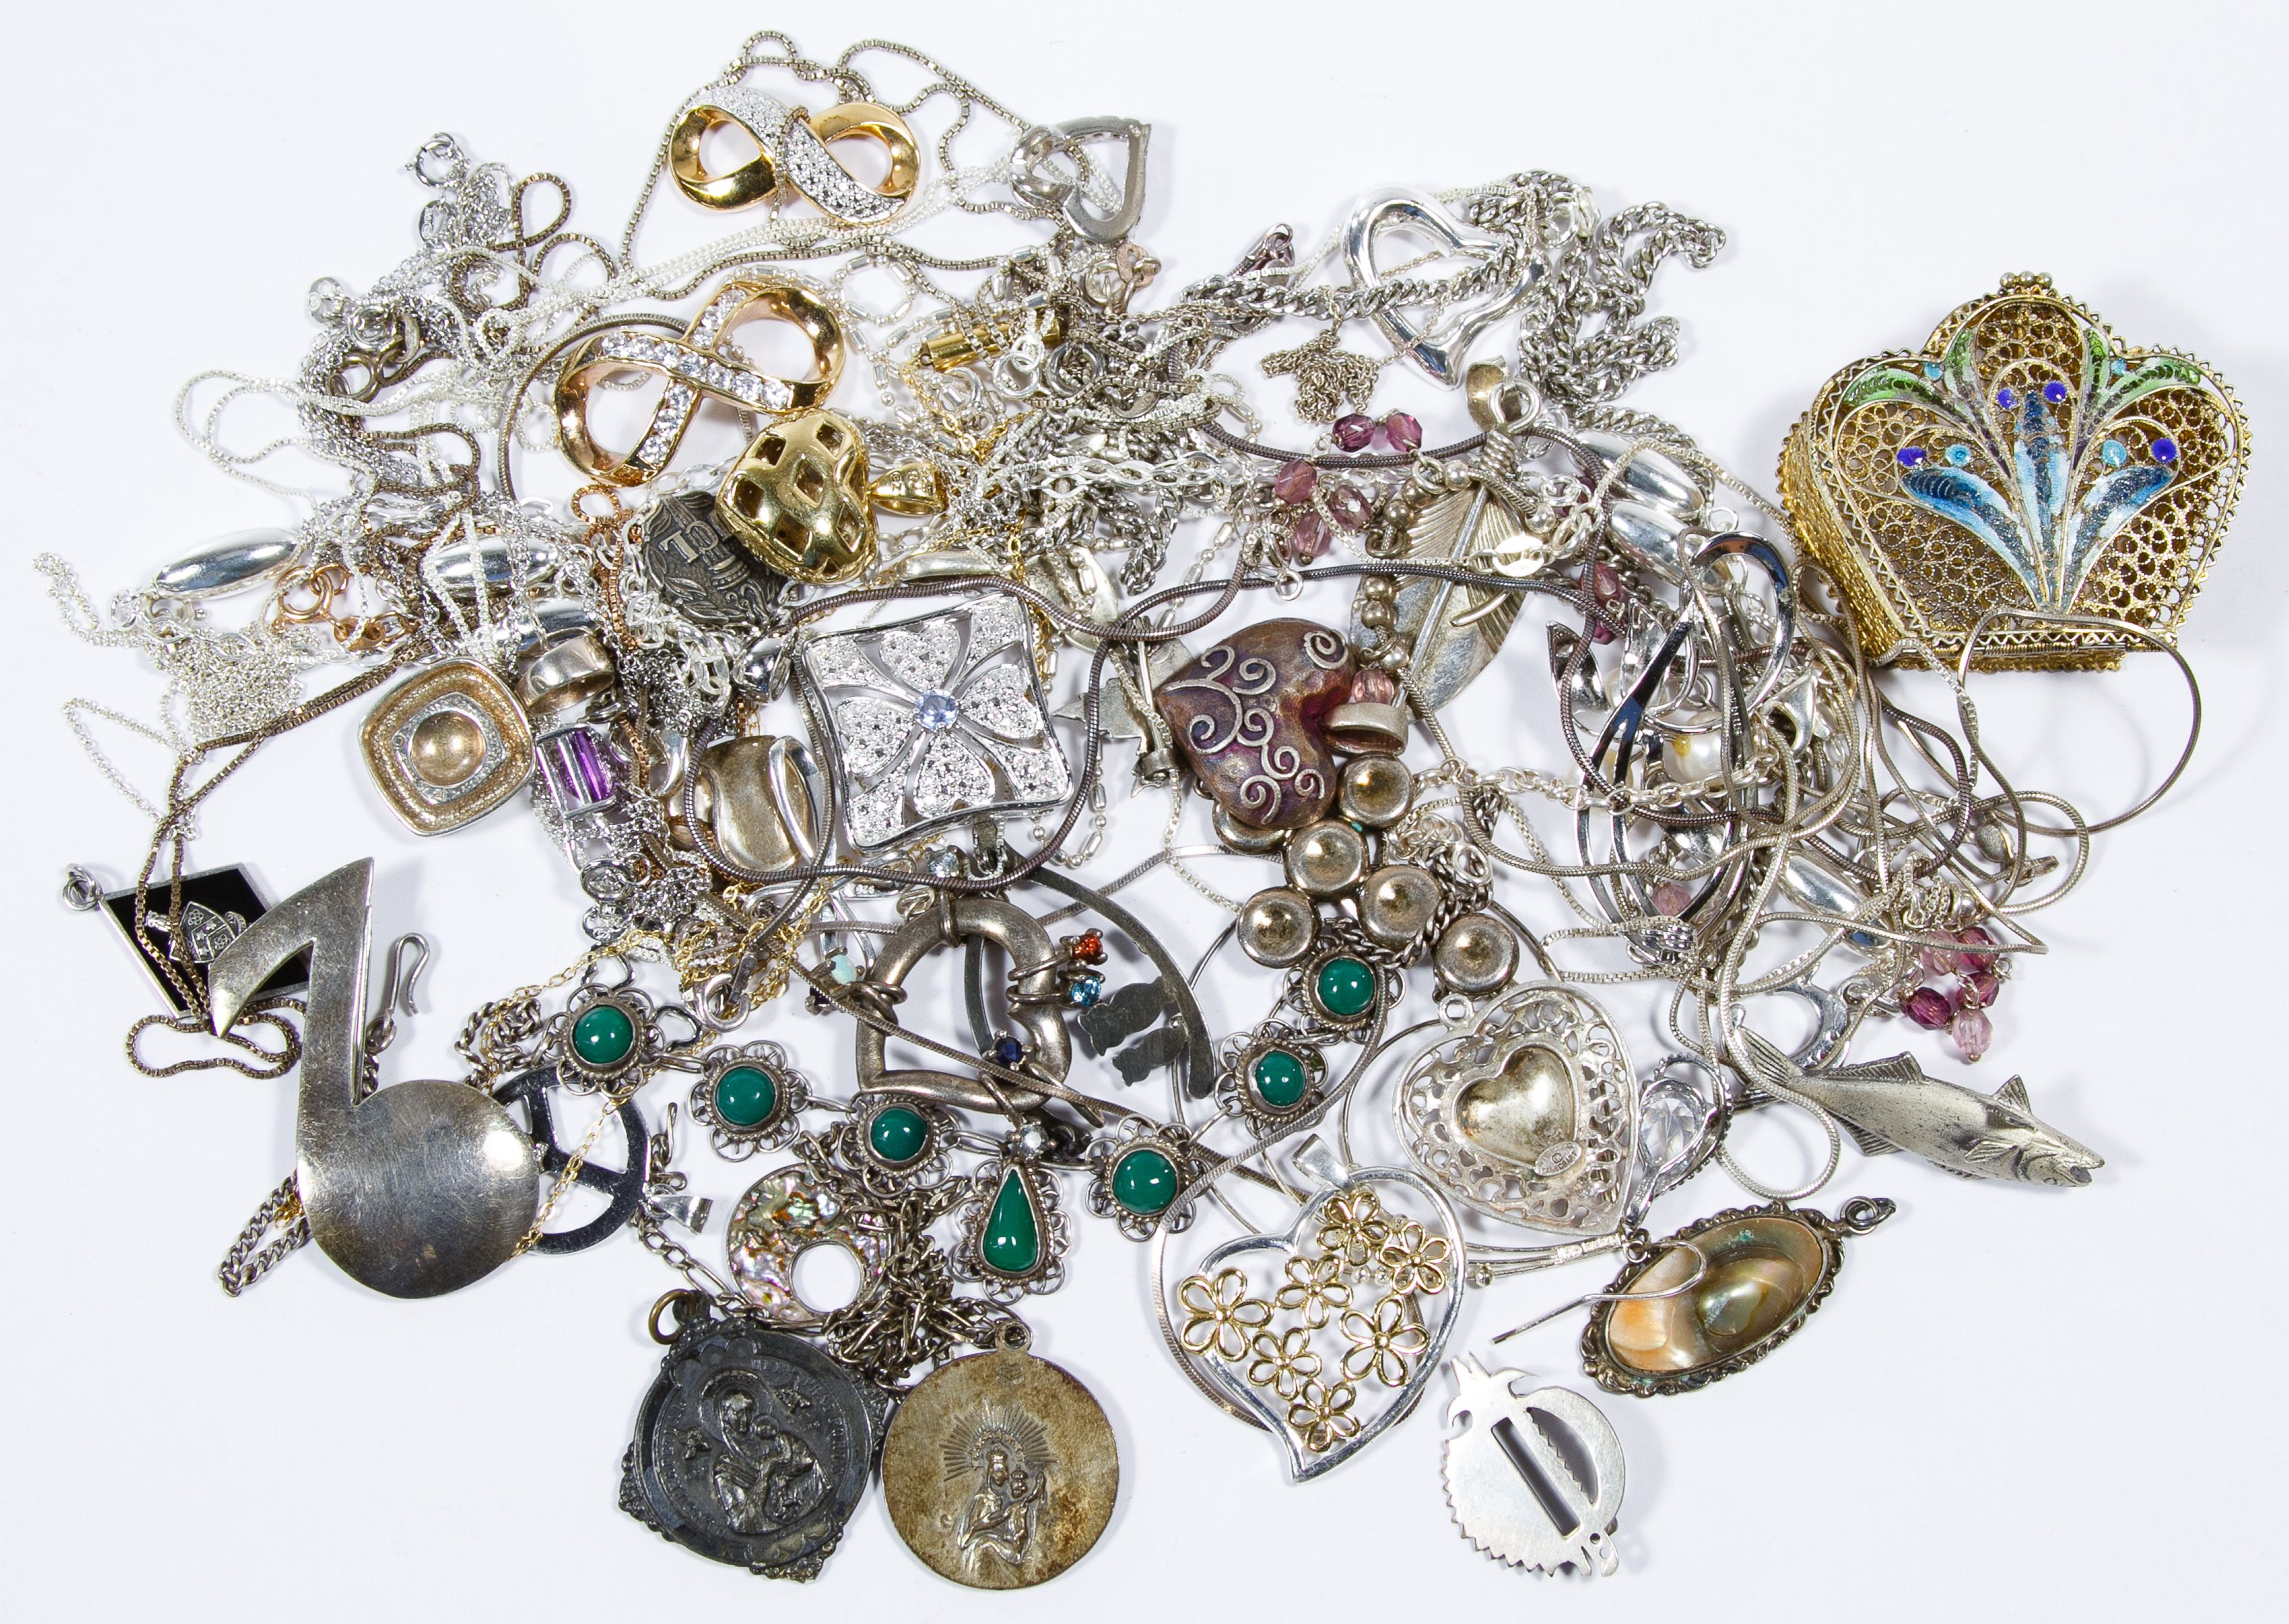 3c282f662 Lot 380: Sterling Silver Jewelry Assortment; Including necklaces, pendants,  charms and pins; most marked 925 or sterling; together with (.800) silver  ...